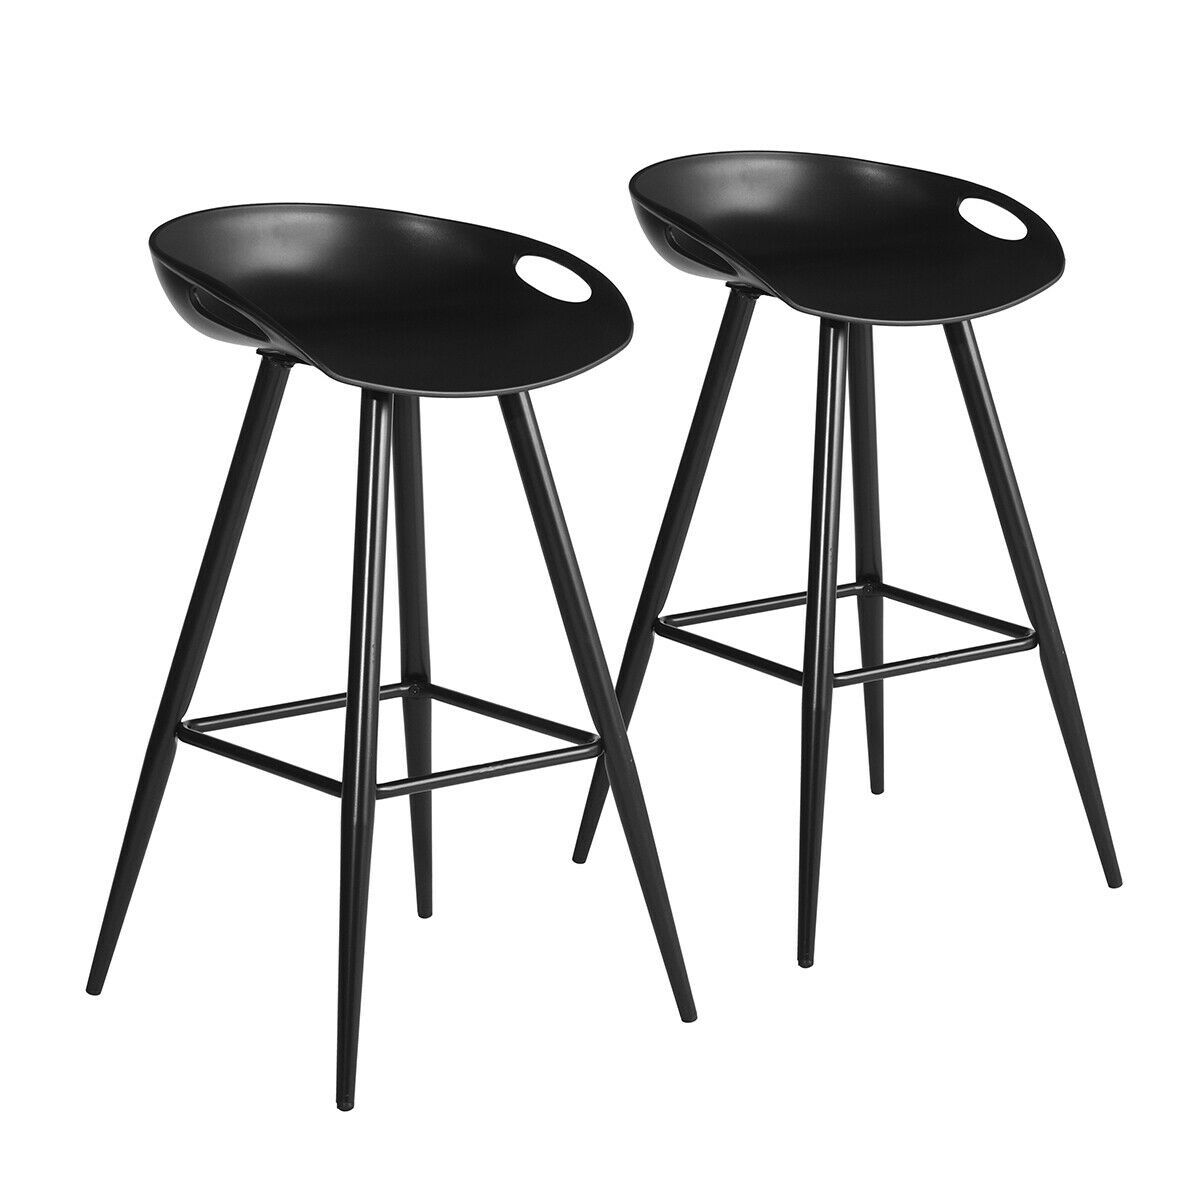 Details About Low Back Fixed Height Bar Stool Modern Design Bar